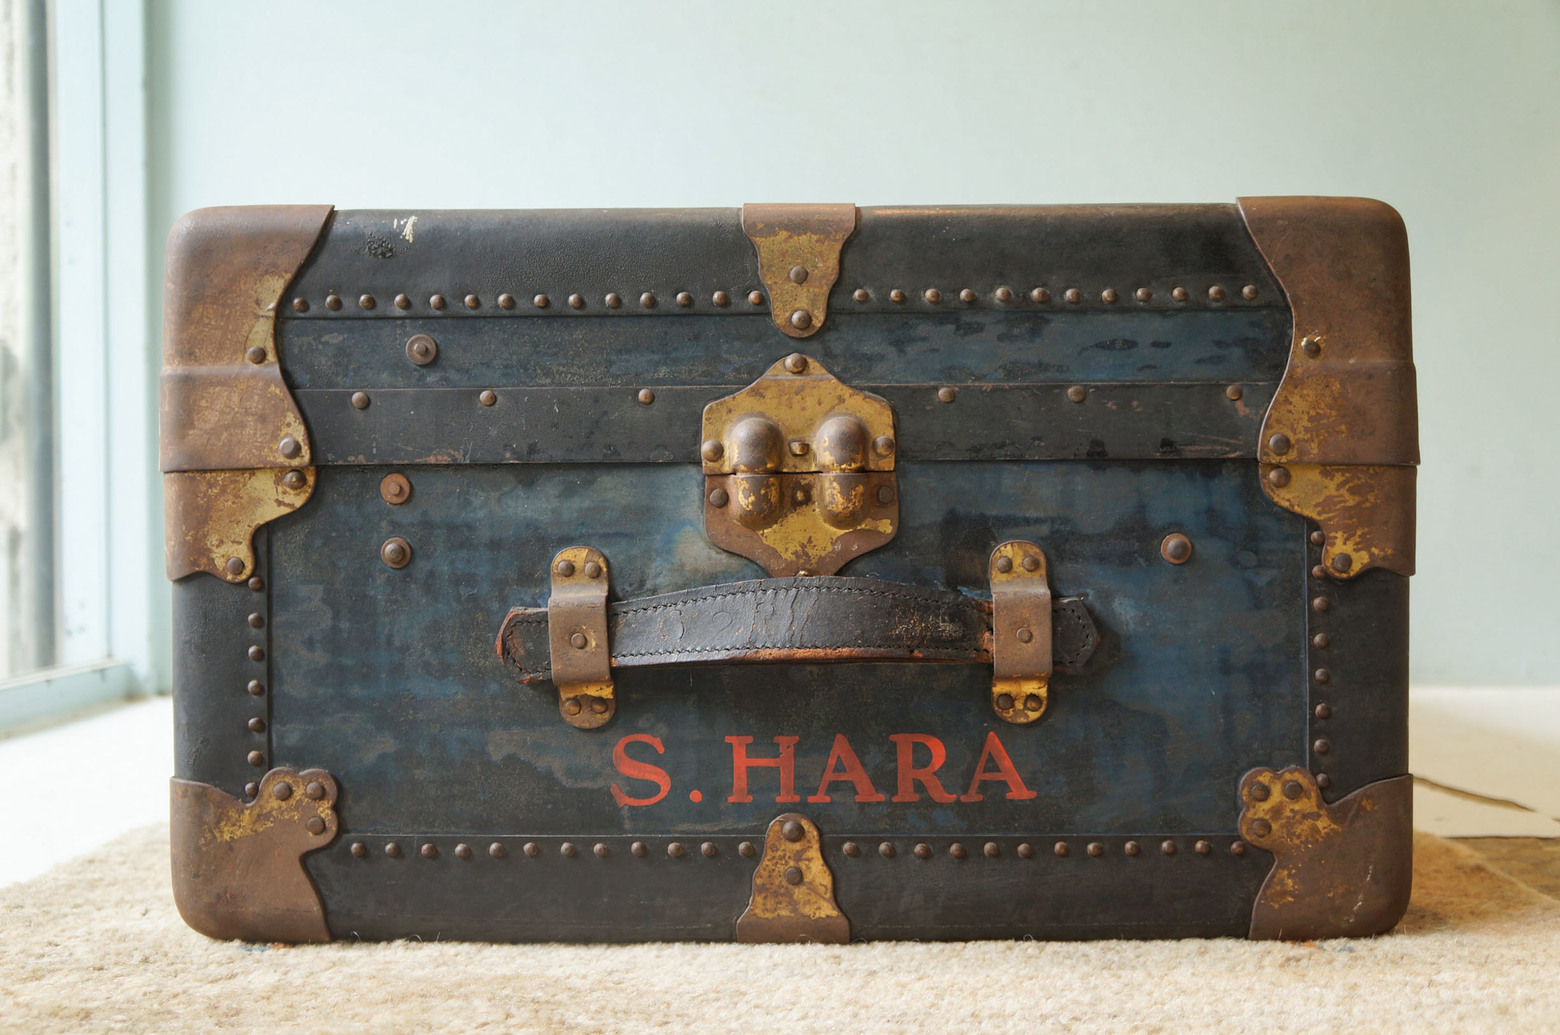 US Antique Steamer Trunk S&S TRUNK AND BAG COMPANY/アメリカ アンティーク スチーマートランク スーツケース ディスプレイ チェスト ボックス 収納 1